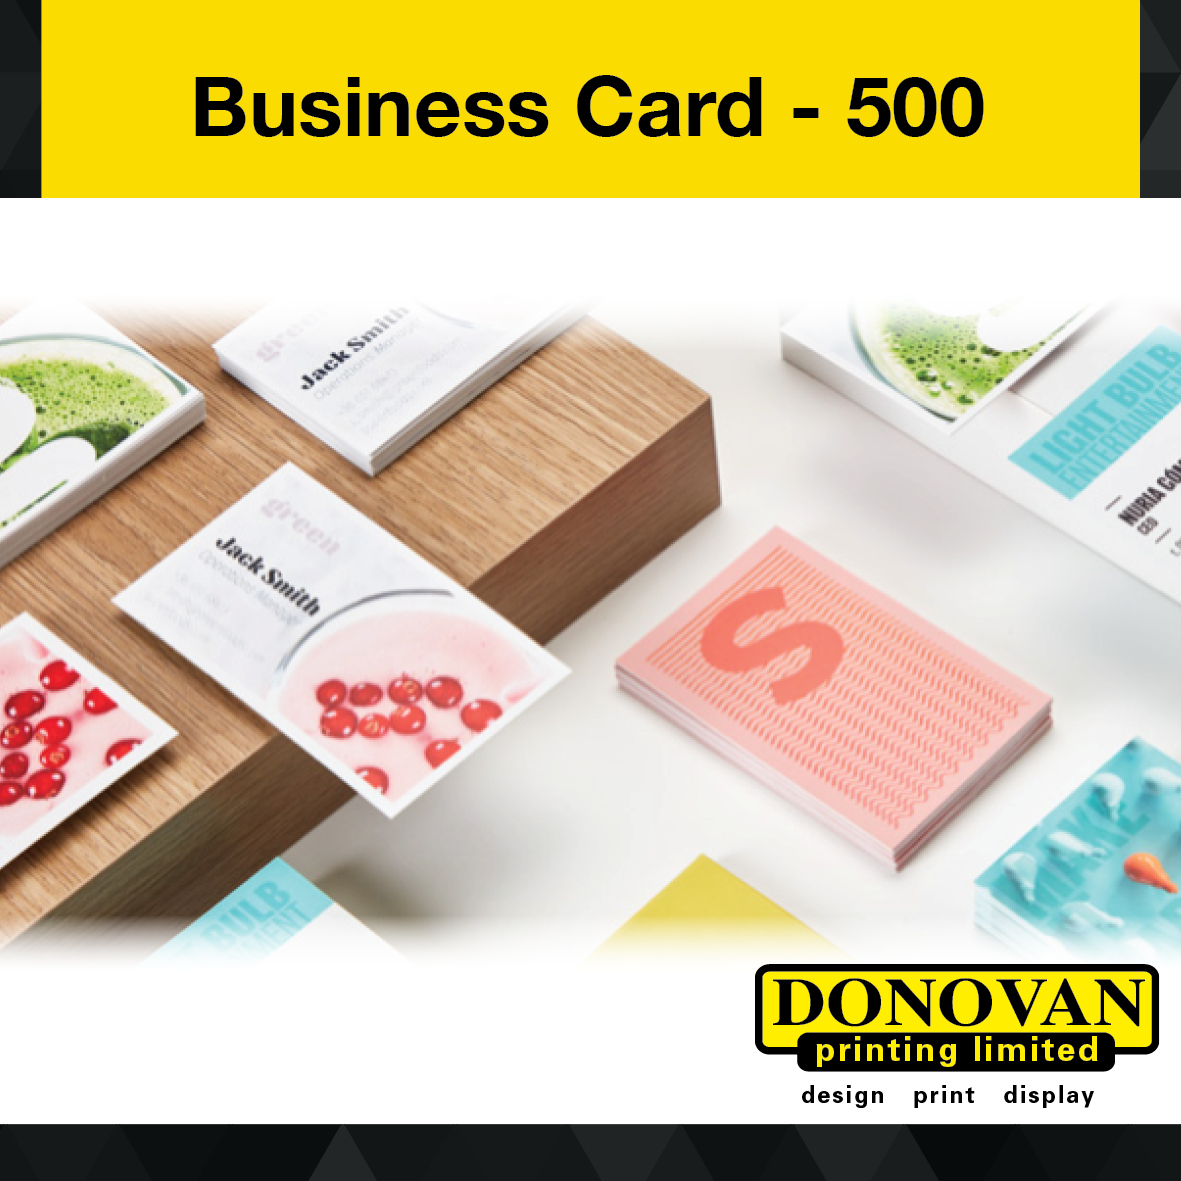 Business Cards 500 Image